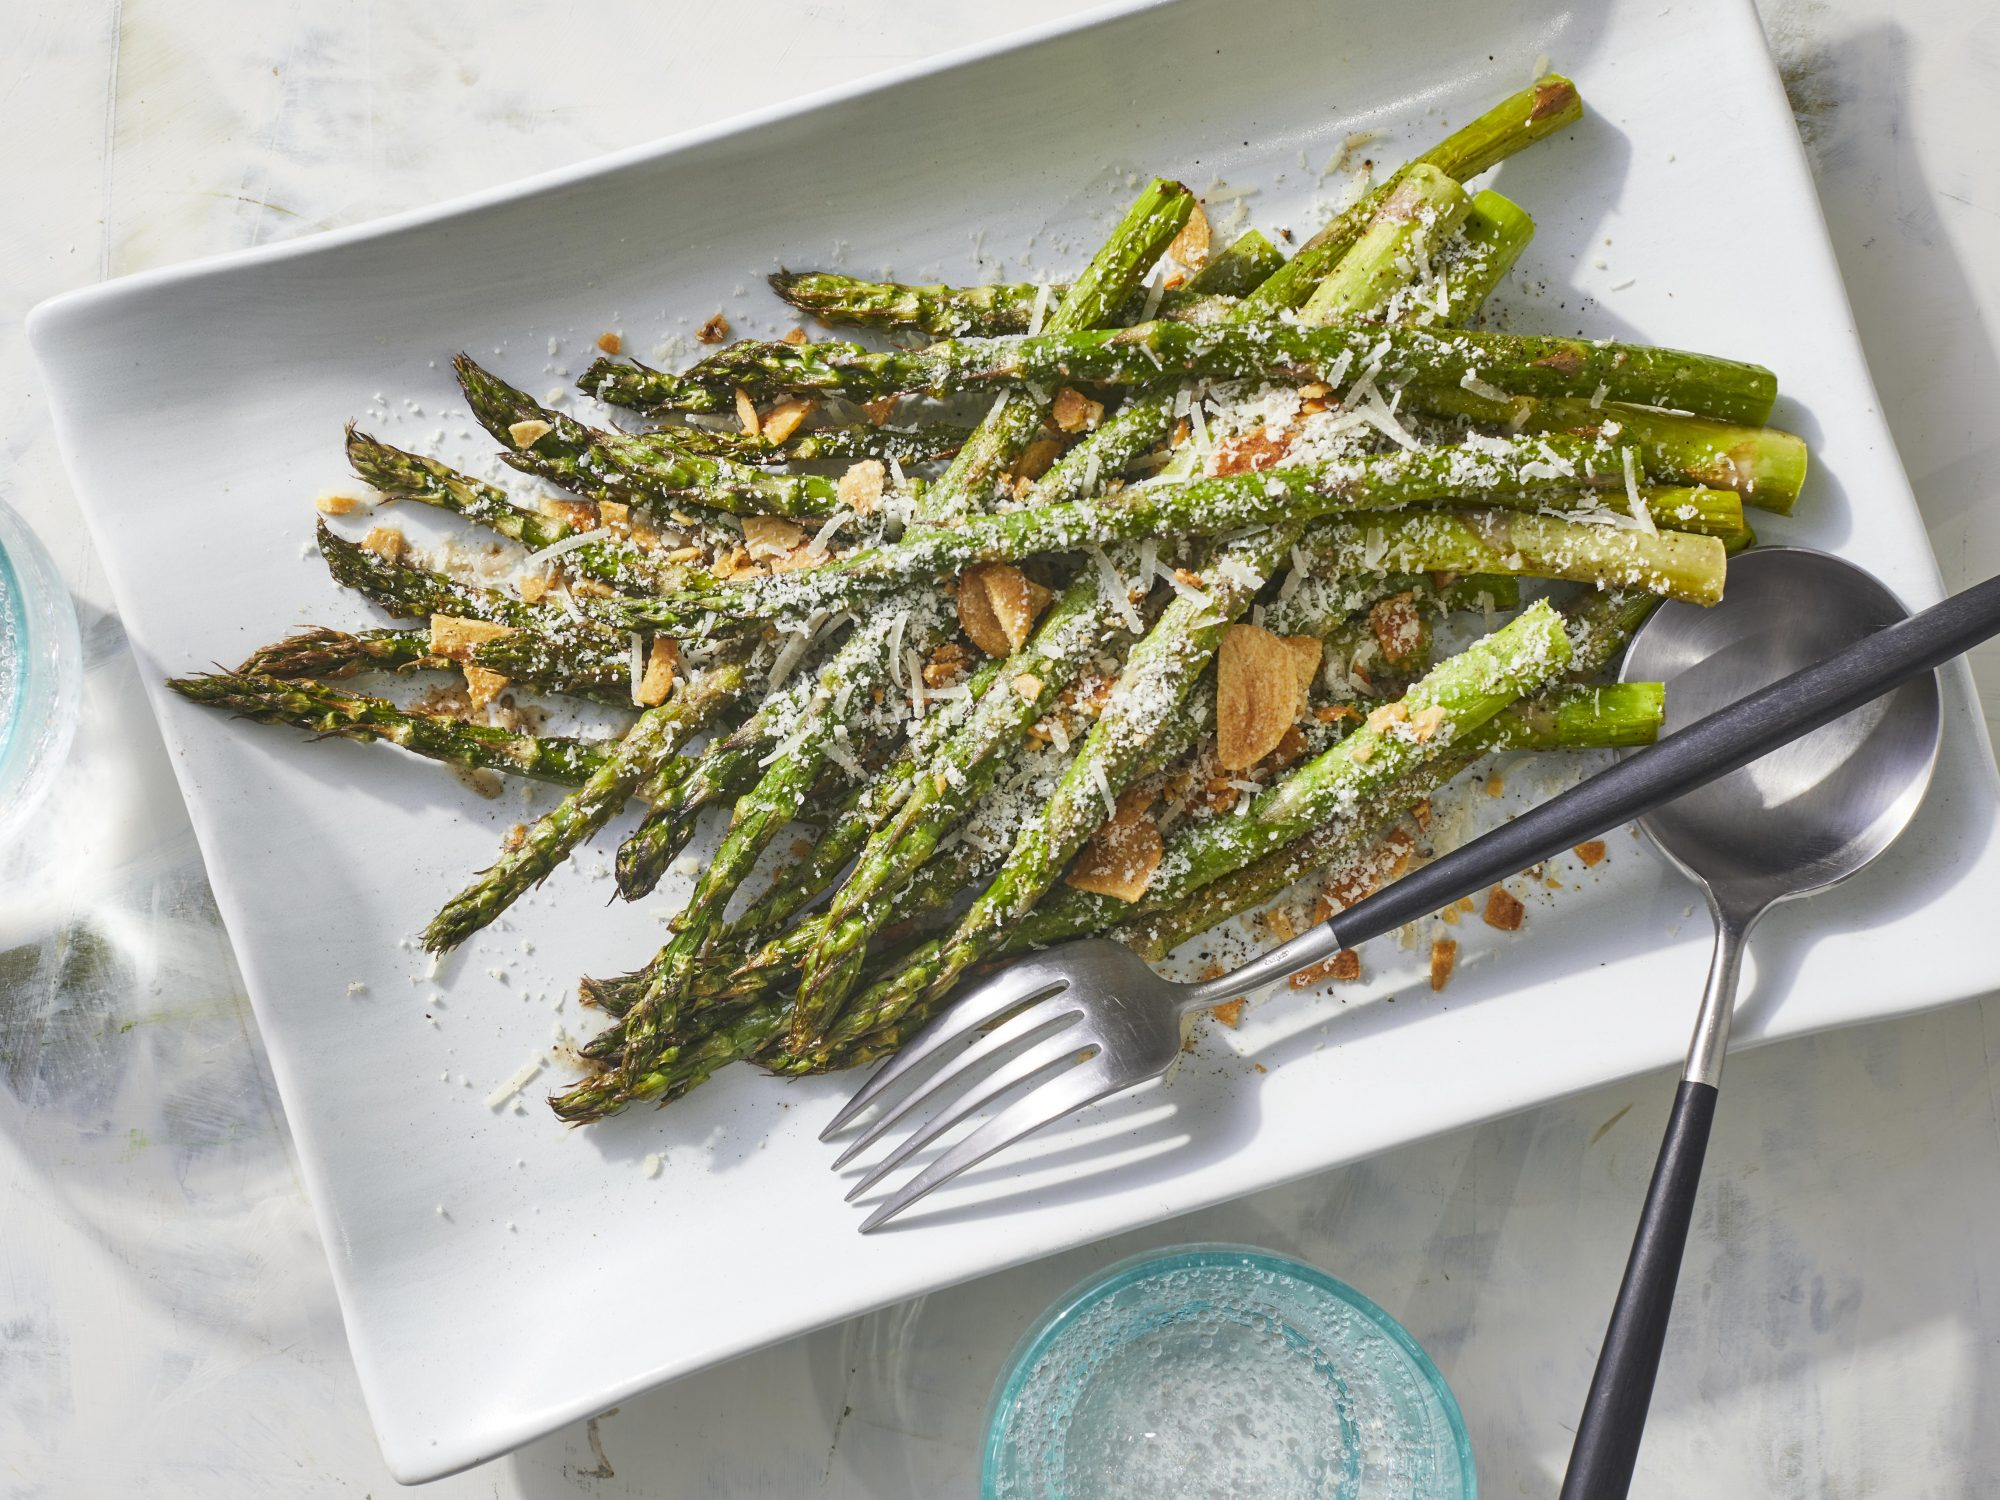 mr - Easy Air Fryer Asparagus Image